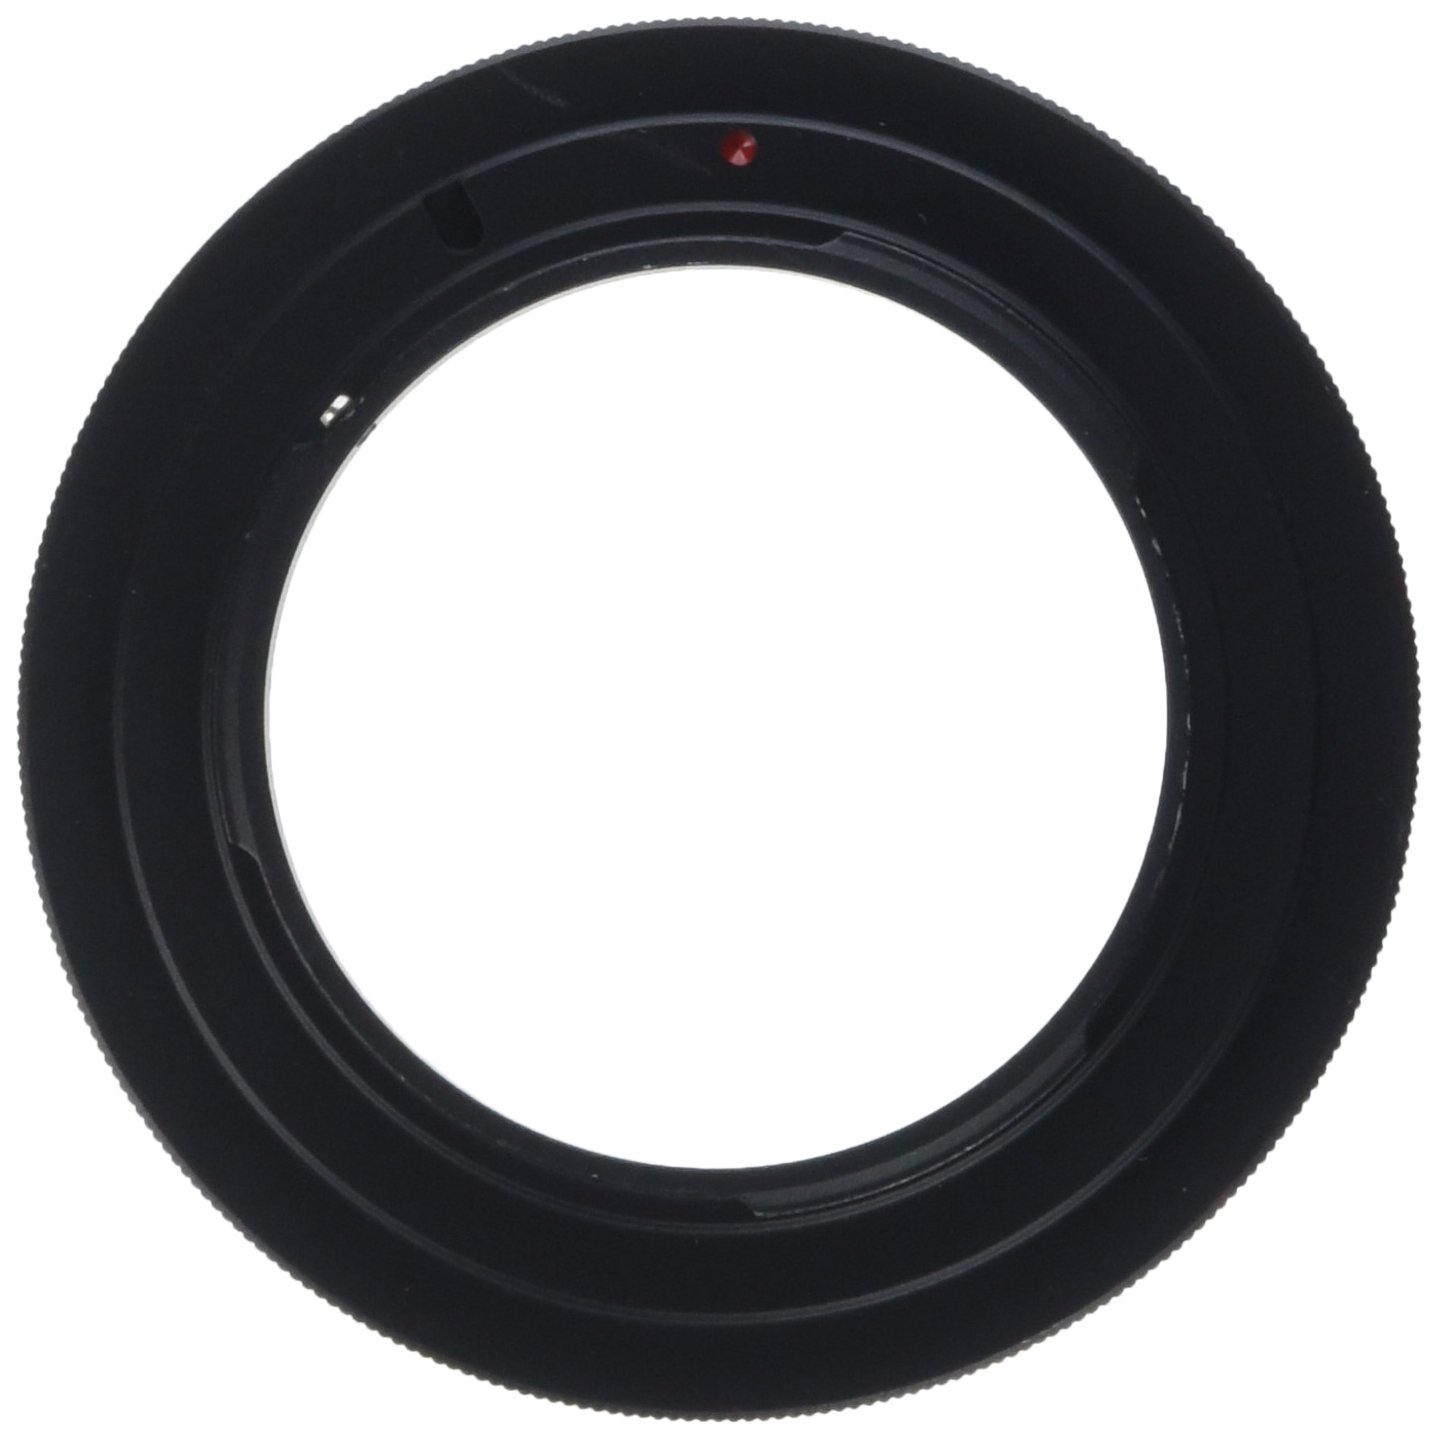 Neewer72mm Macro lens Reverse Adapter Ring for Canon EOS EF/EF-S Mount 10029670@@1